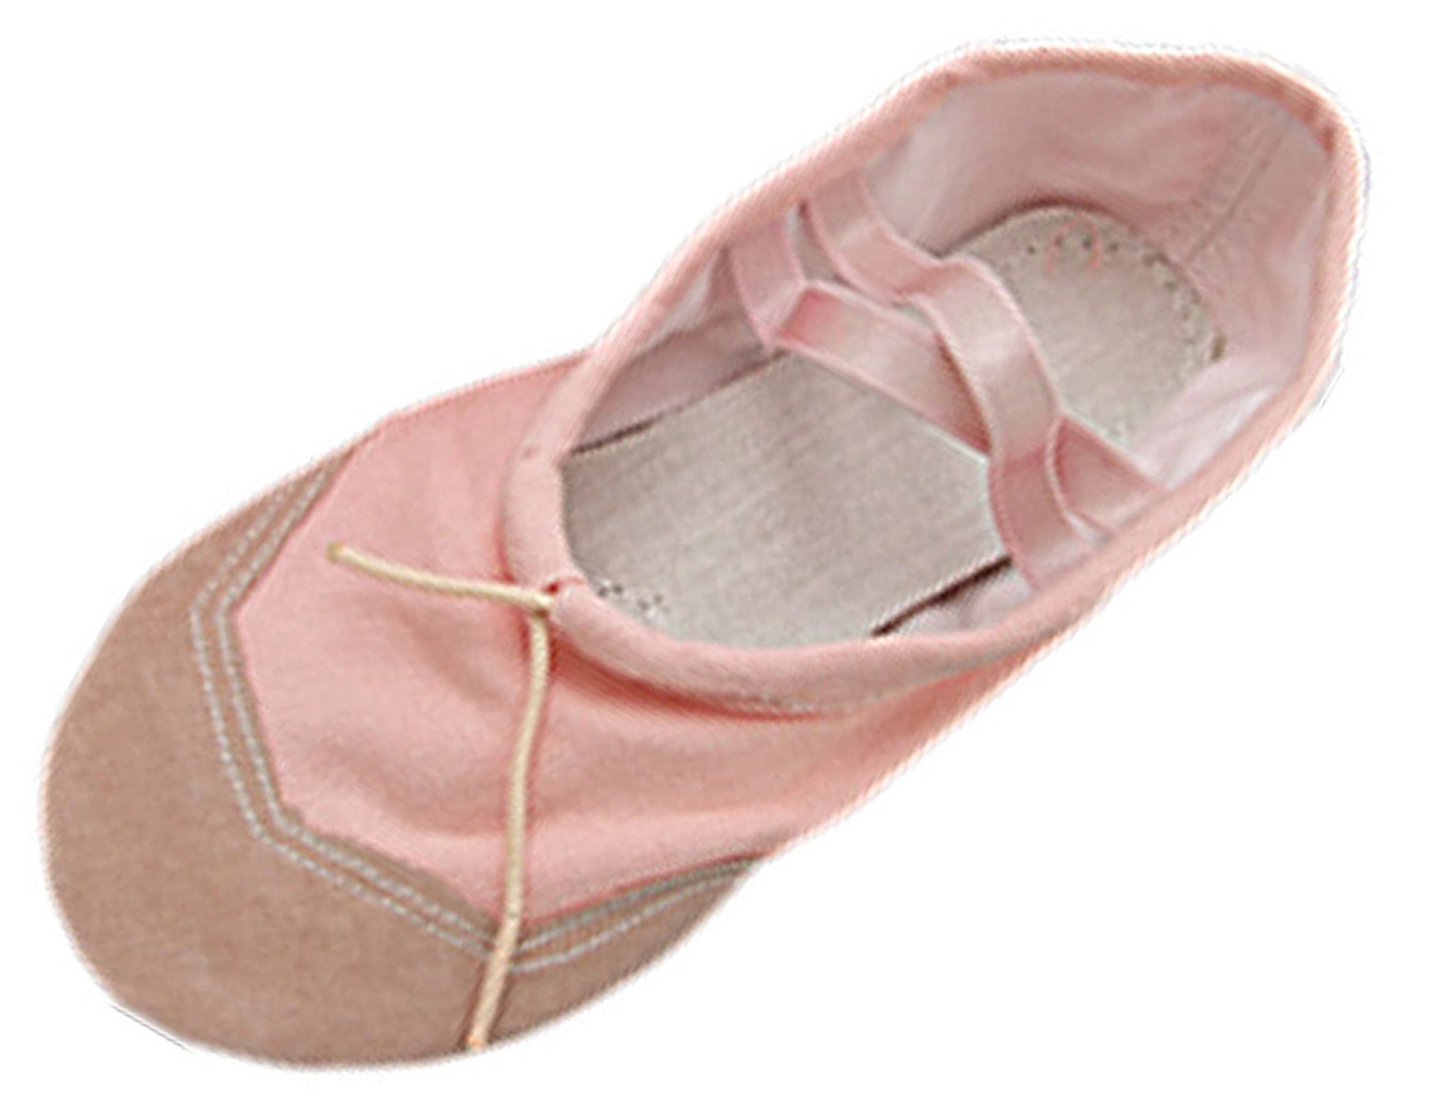 Soft Pink Dancing Dance Ballet Ladies' Shoes US 8.5